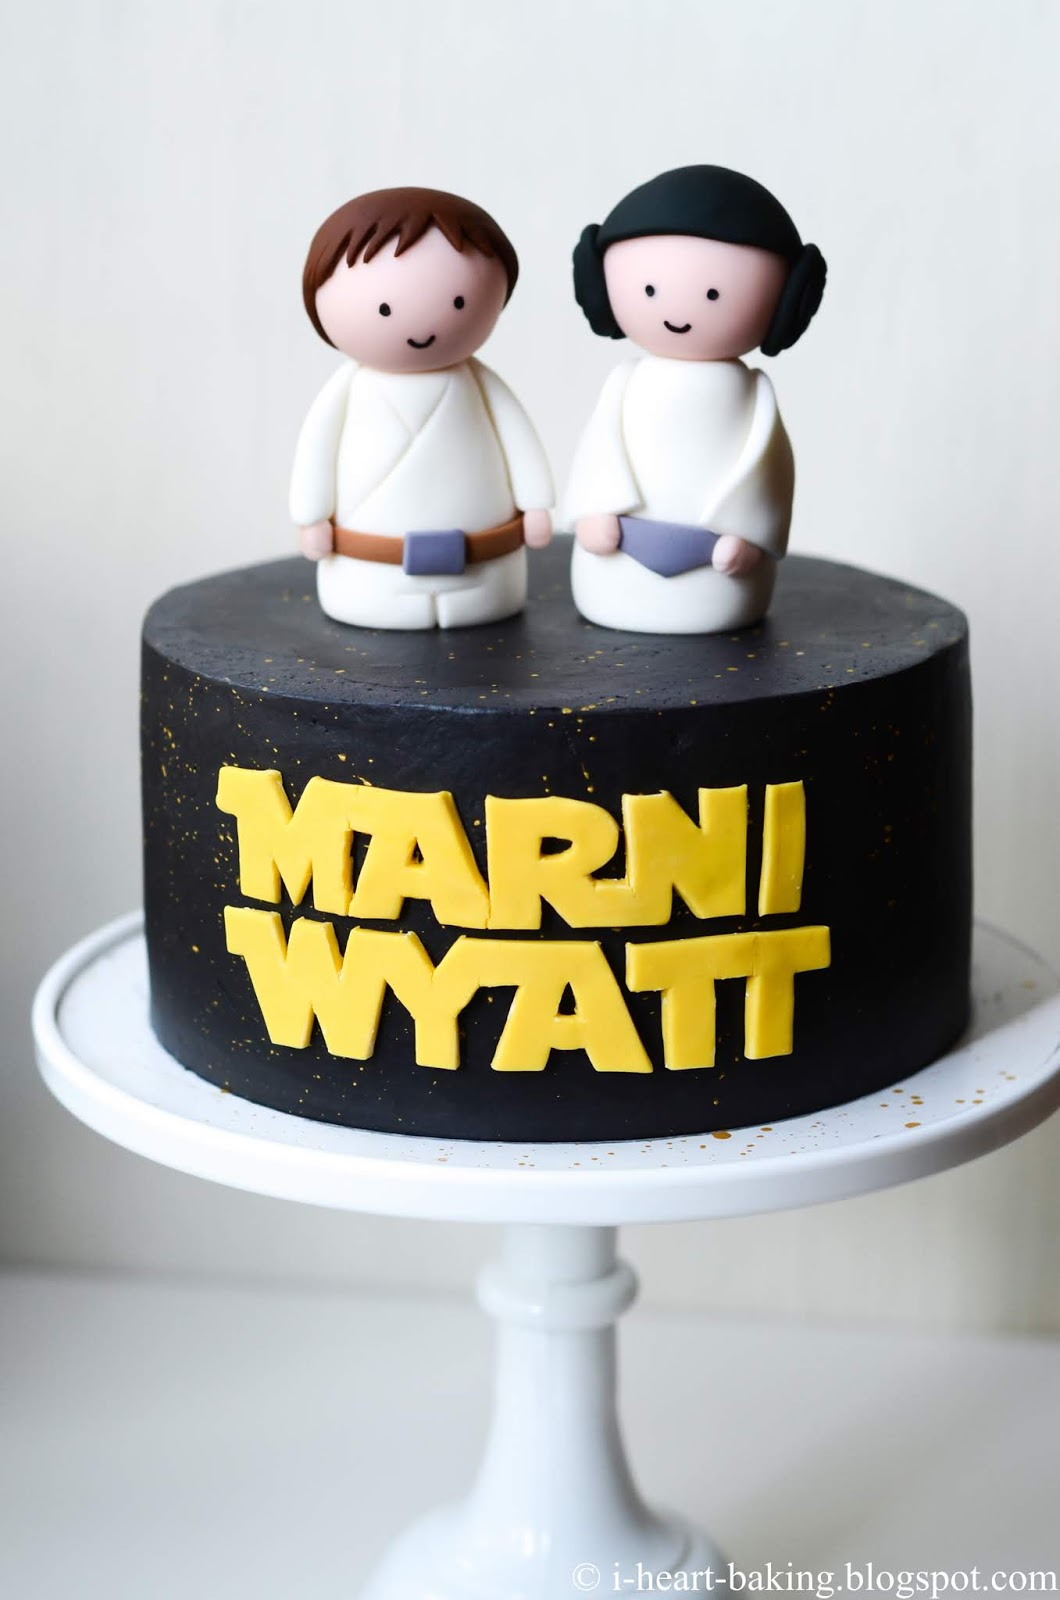 Tremendous I Heart Baking Star Wars Birthday Cake With Handmade Fondant Funny Birthday Cards Online Bapapcheapnameinfo